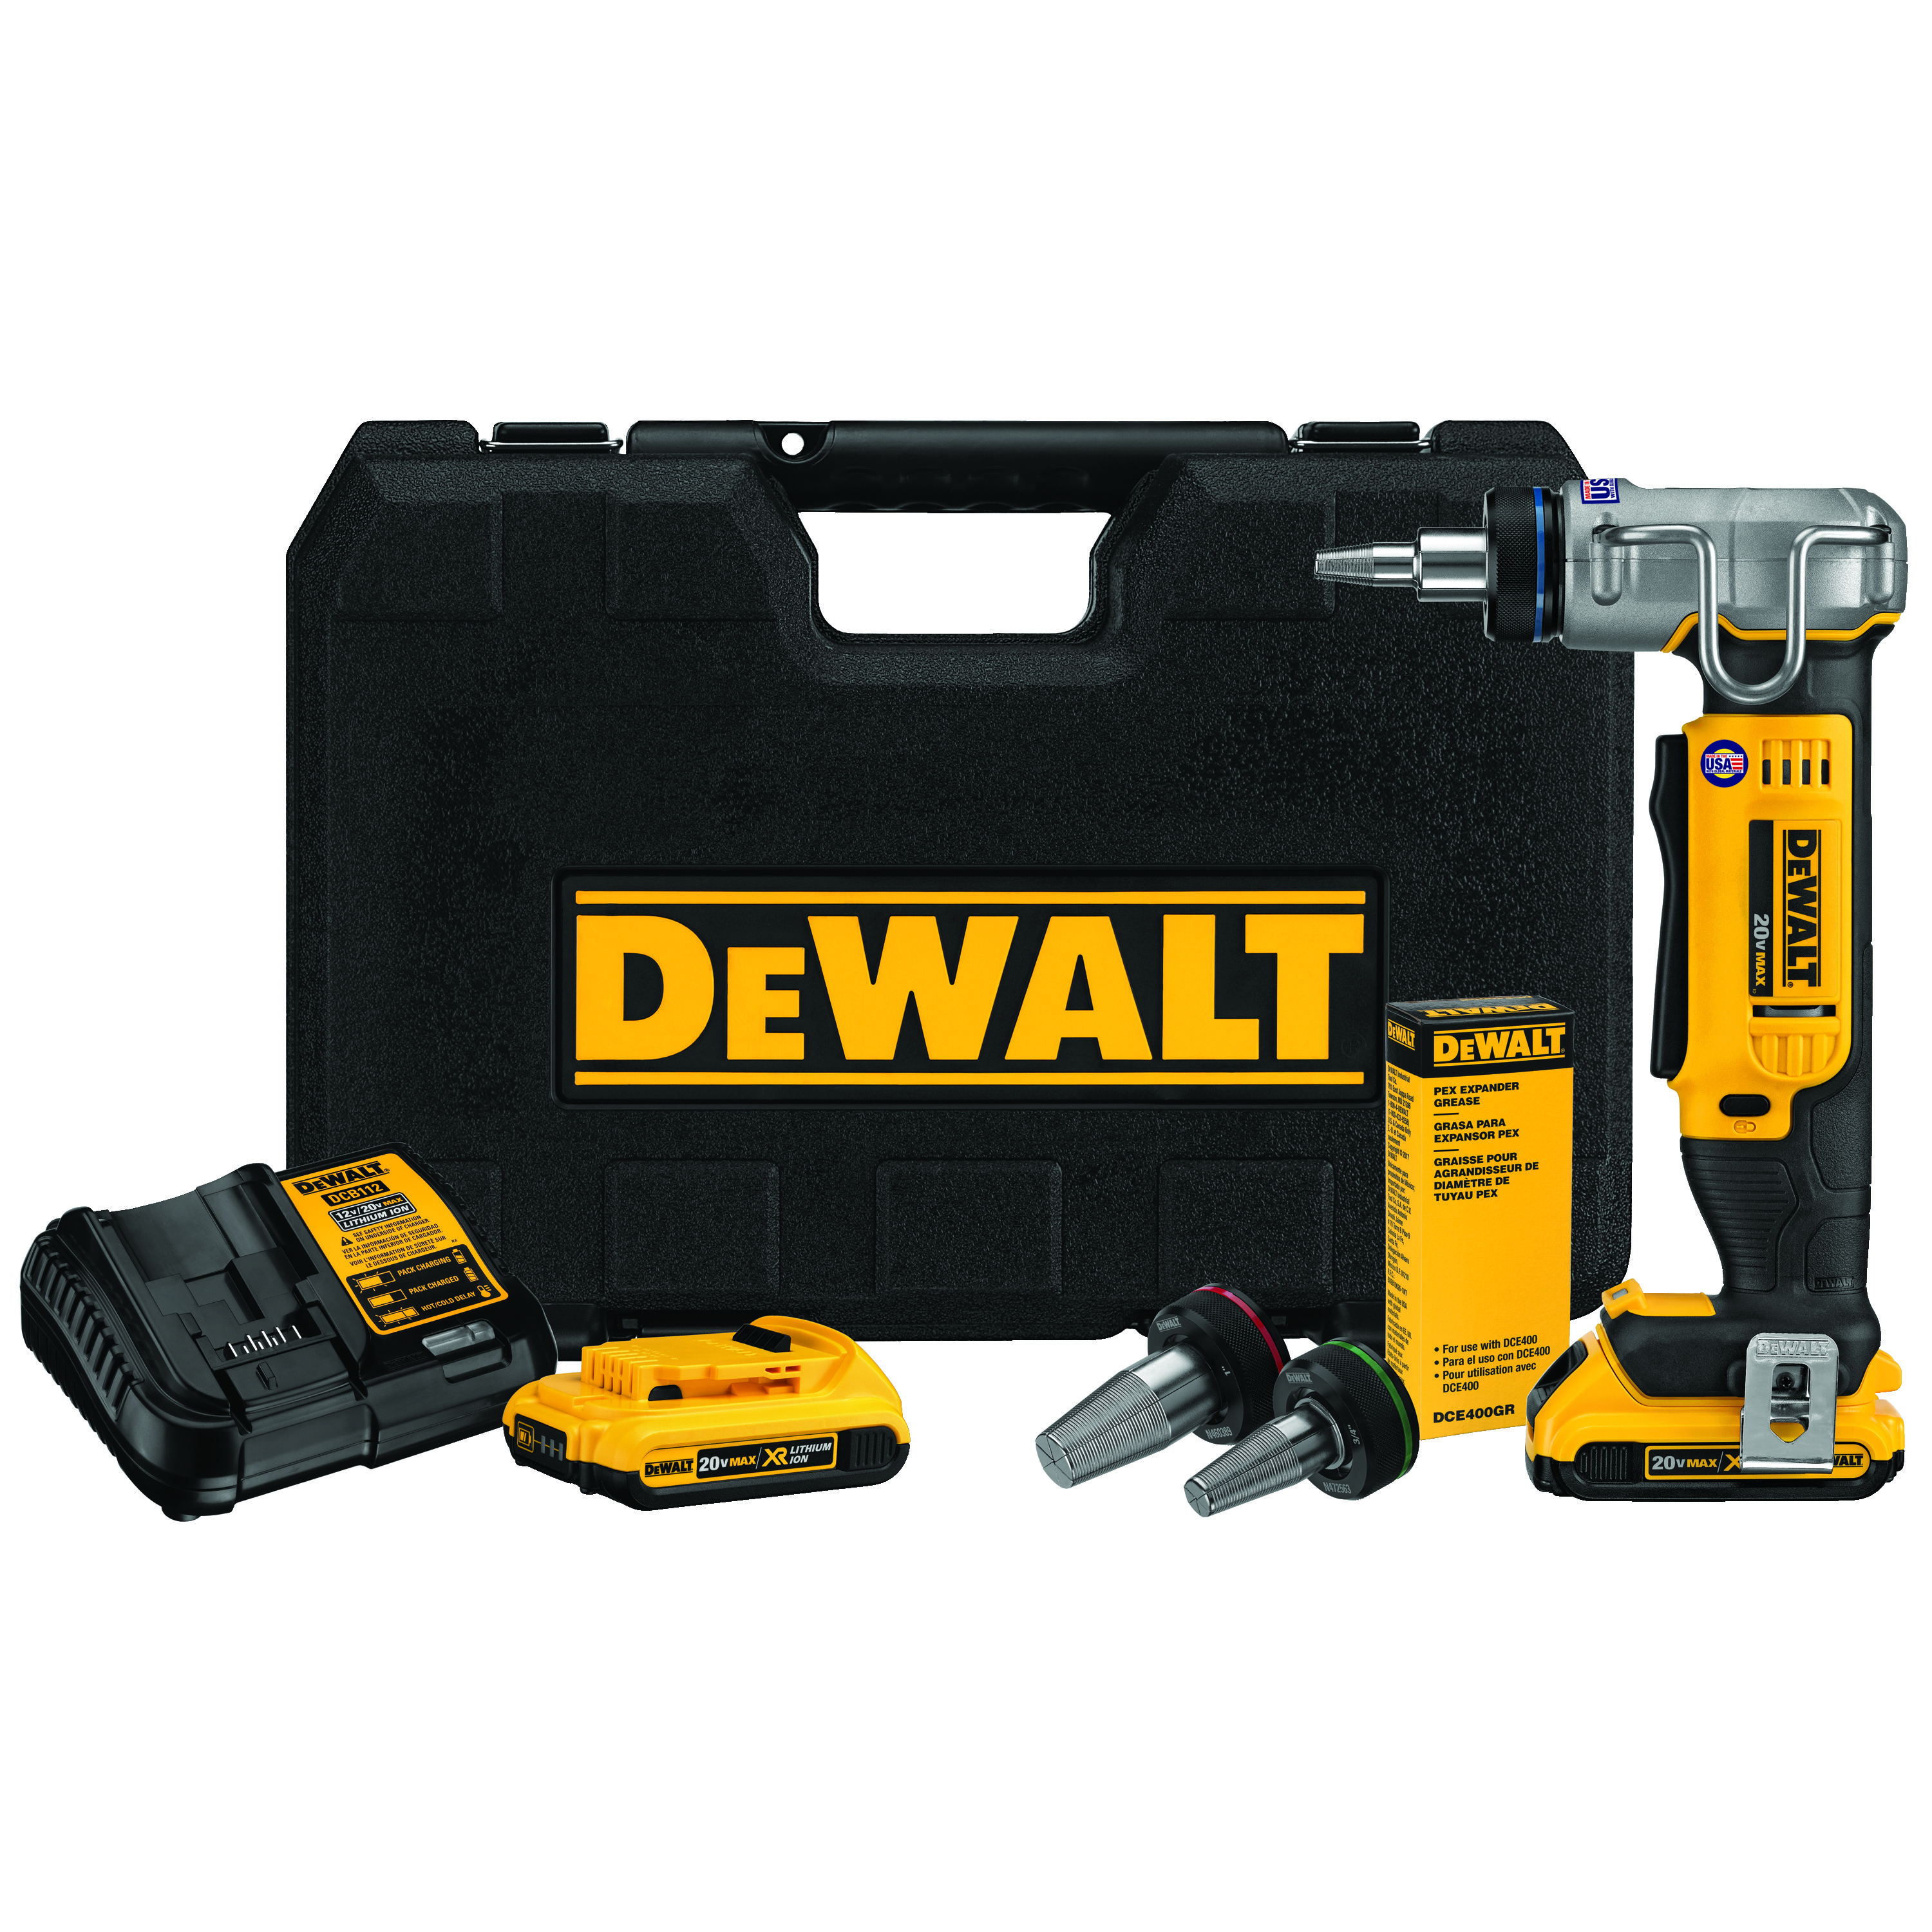 DeWALT® DCE400D2 Type A Cordless PEX Expander Kit, 3/8 to 1 in Tubing, 20 VDC, Lithium-Ion Battery